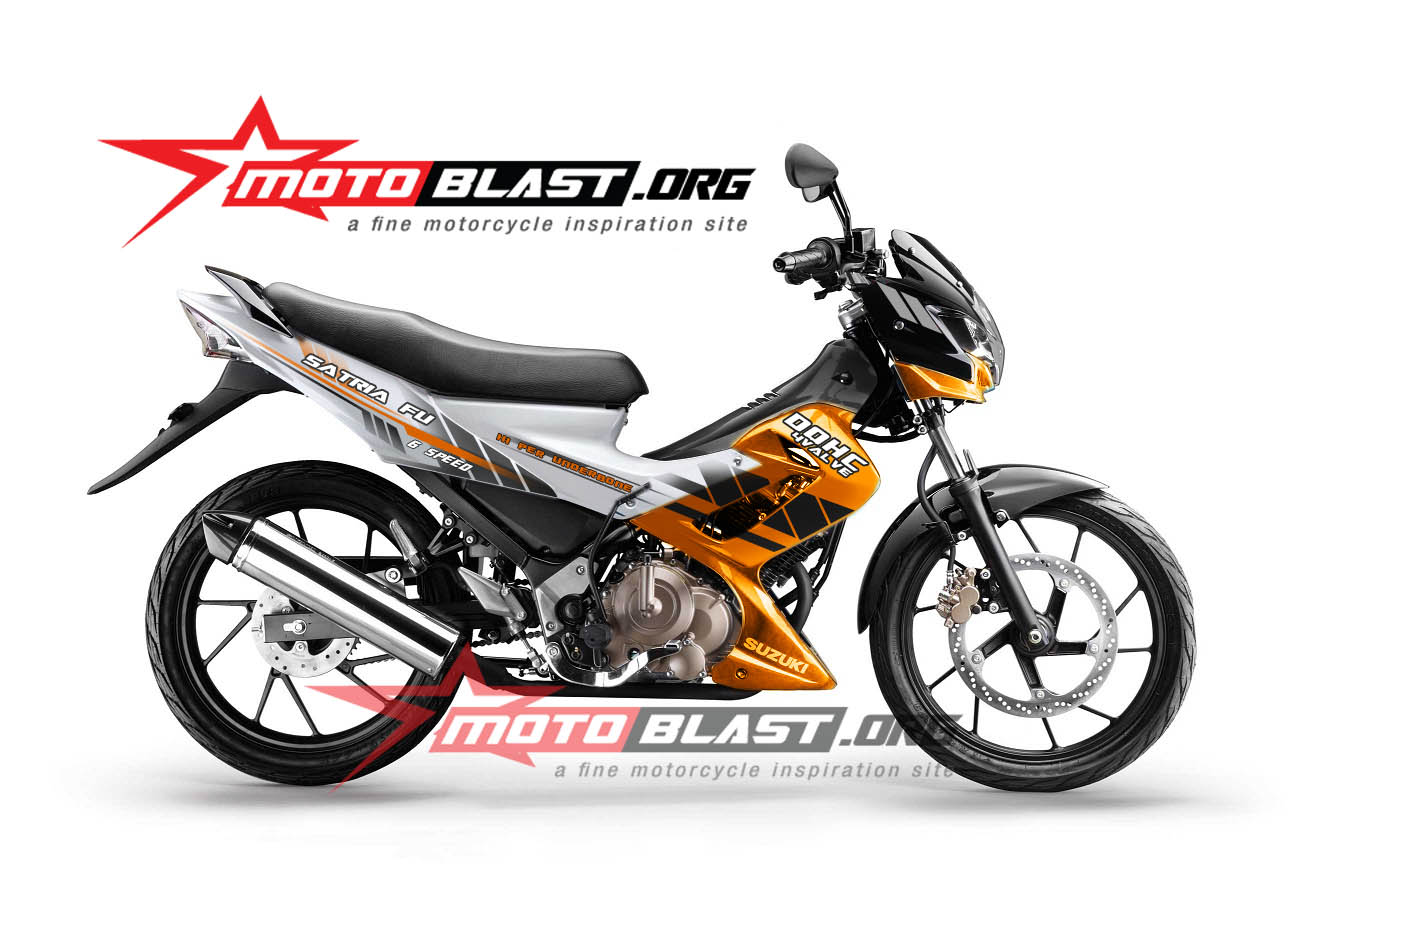 Top Gambar Modif Striping Satria Fu Modifikasi Motor